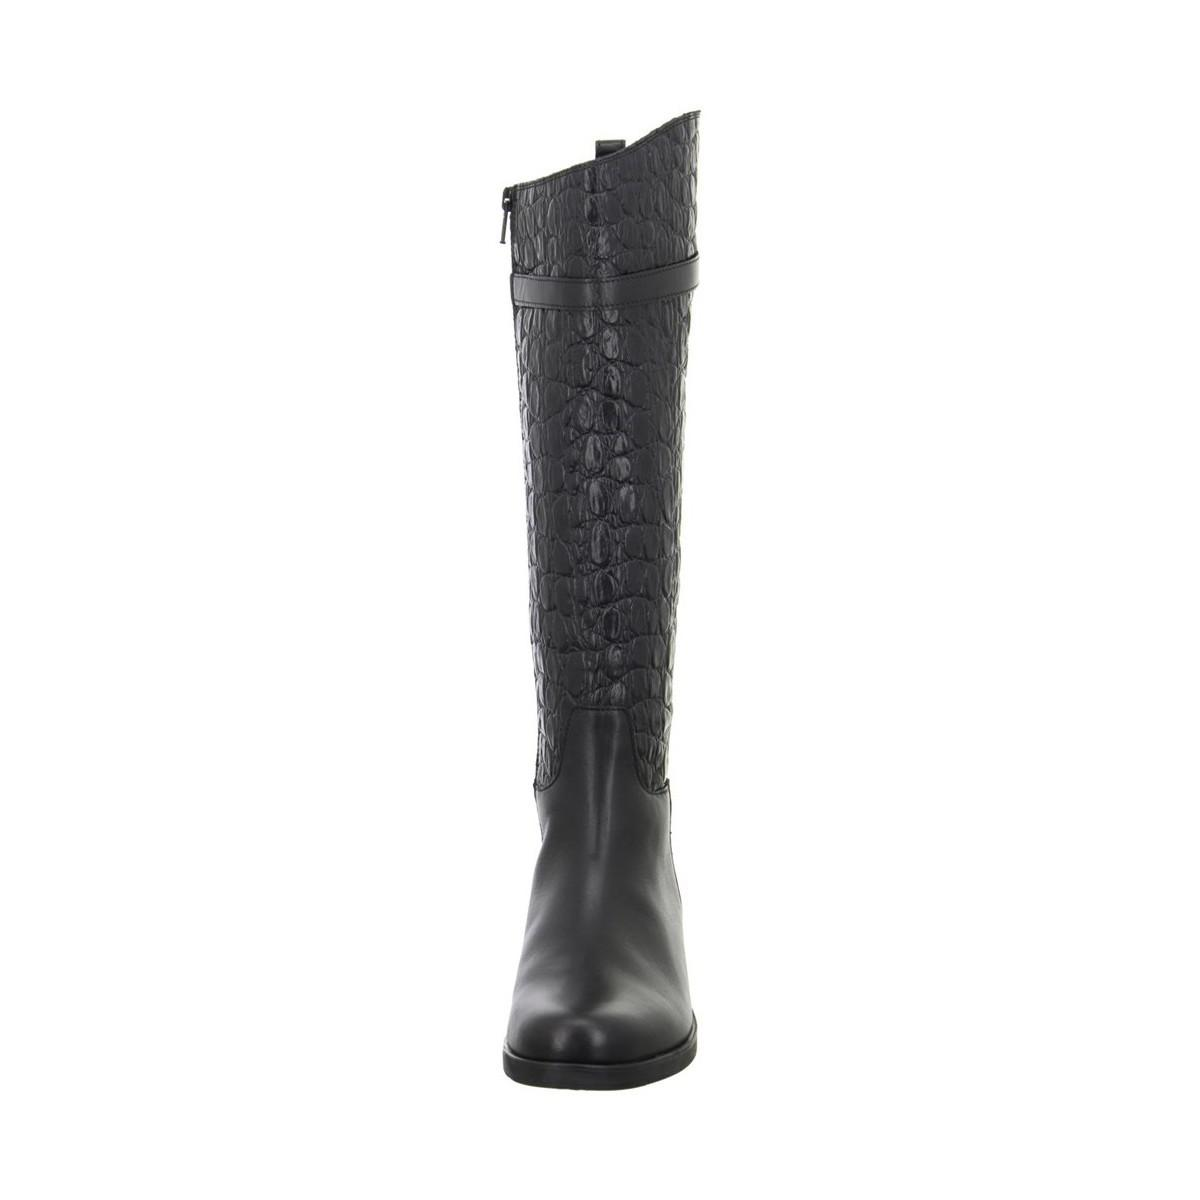 Clarks Hopedale Wish Women's High Boots In Black